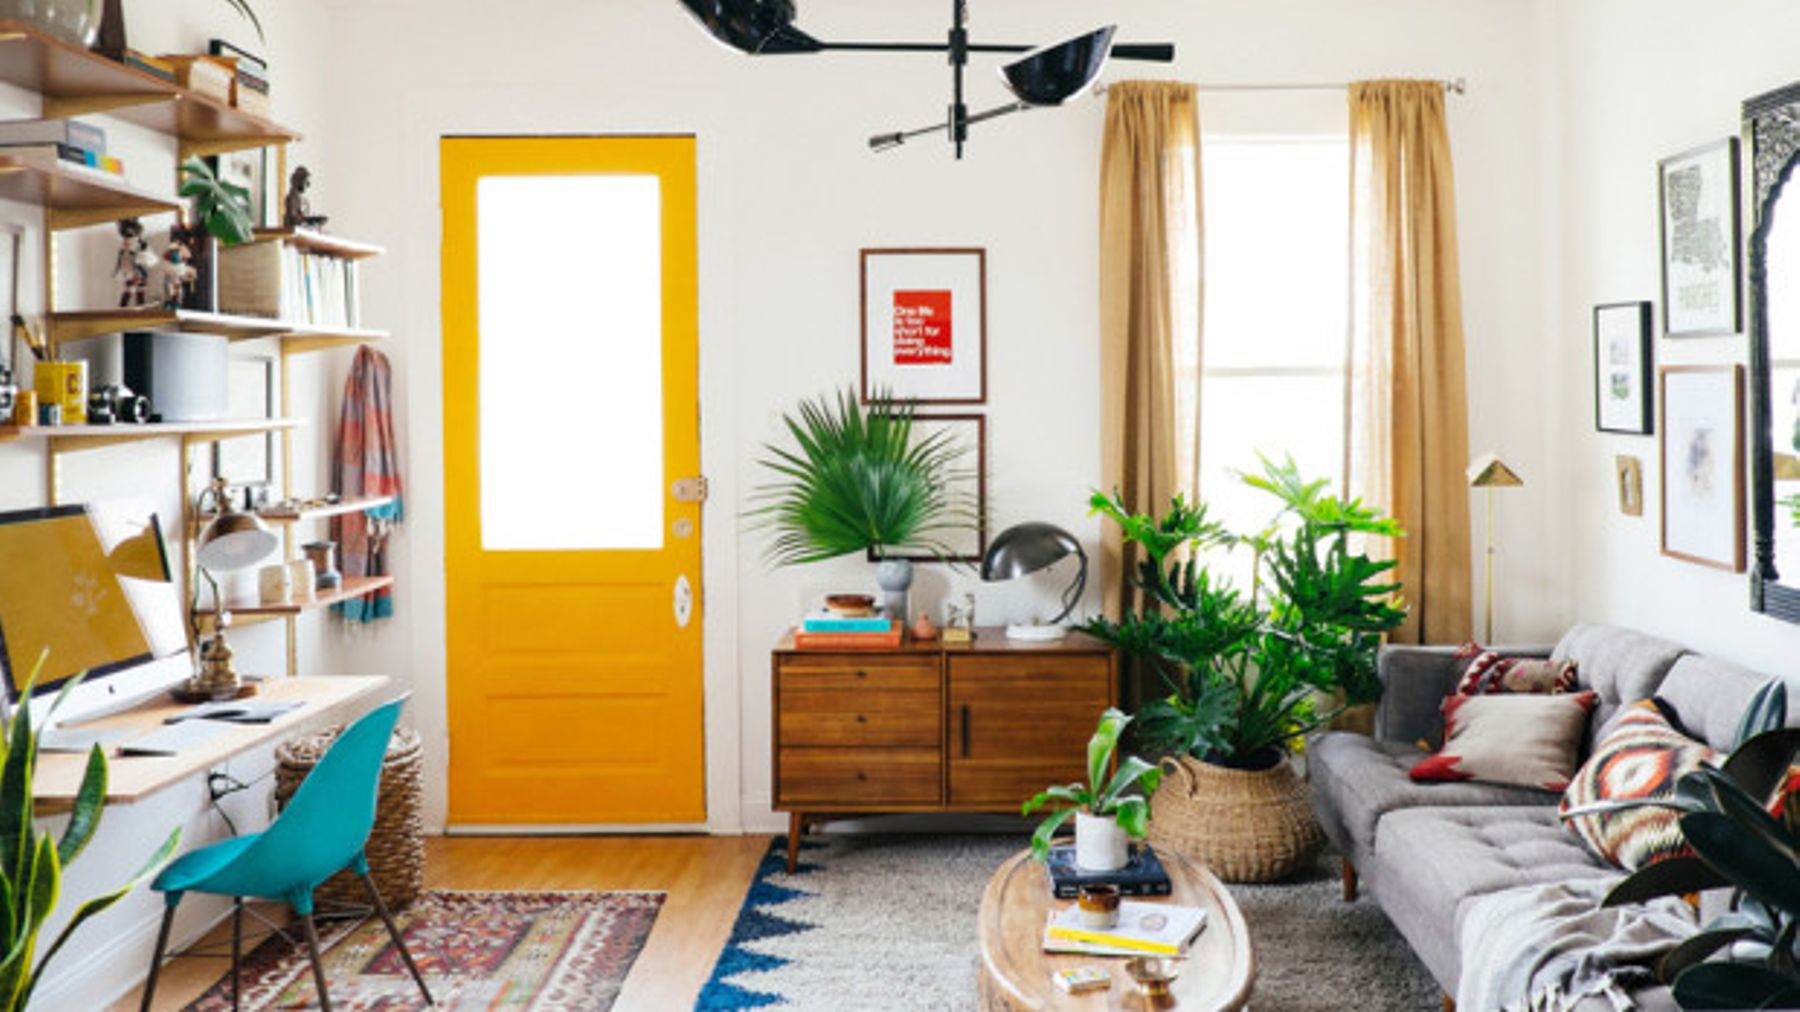 10 small living room design ideas even if its rented